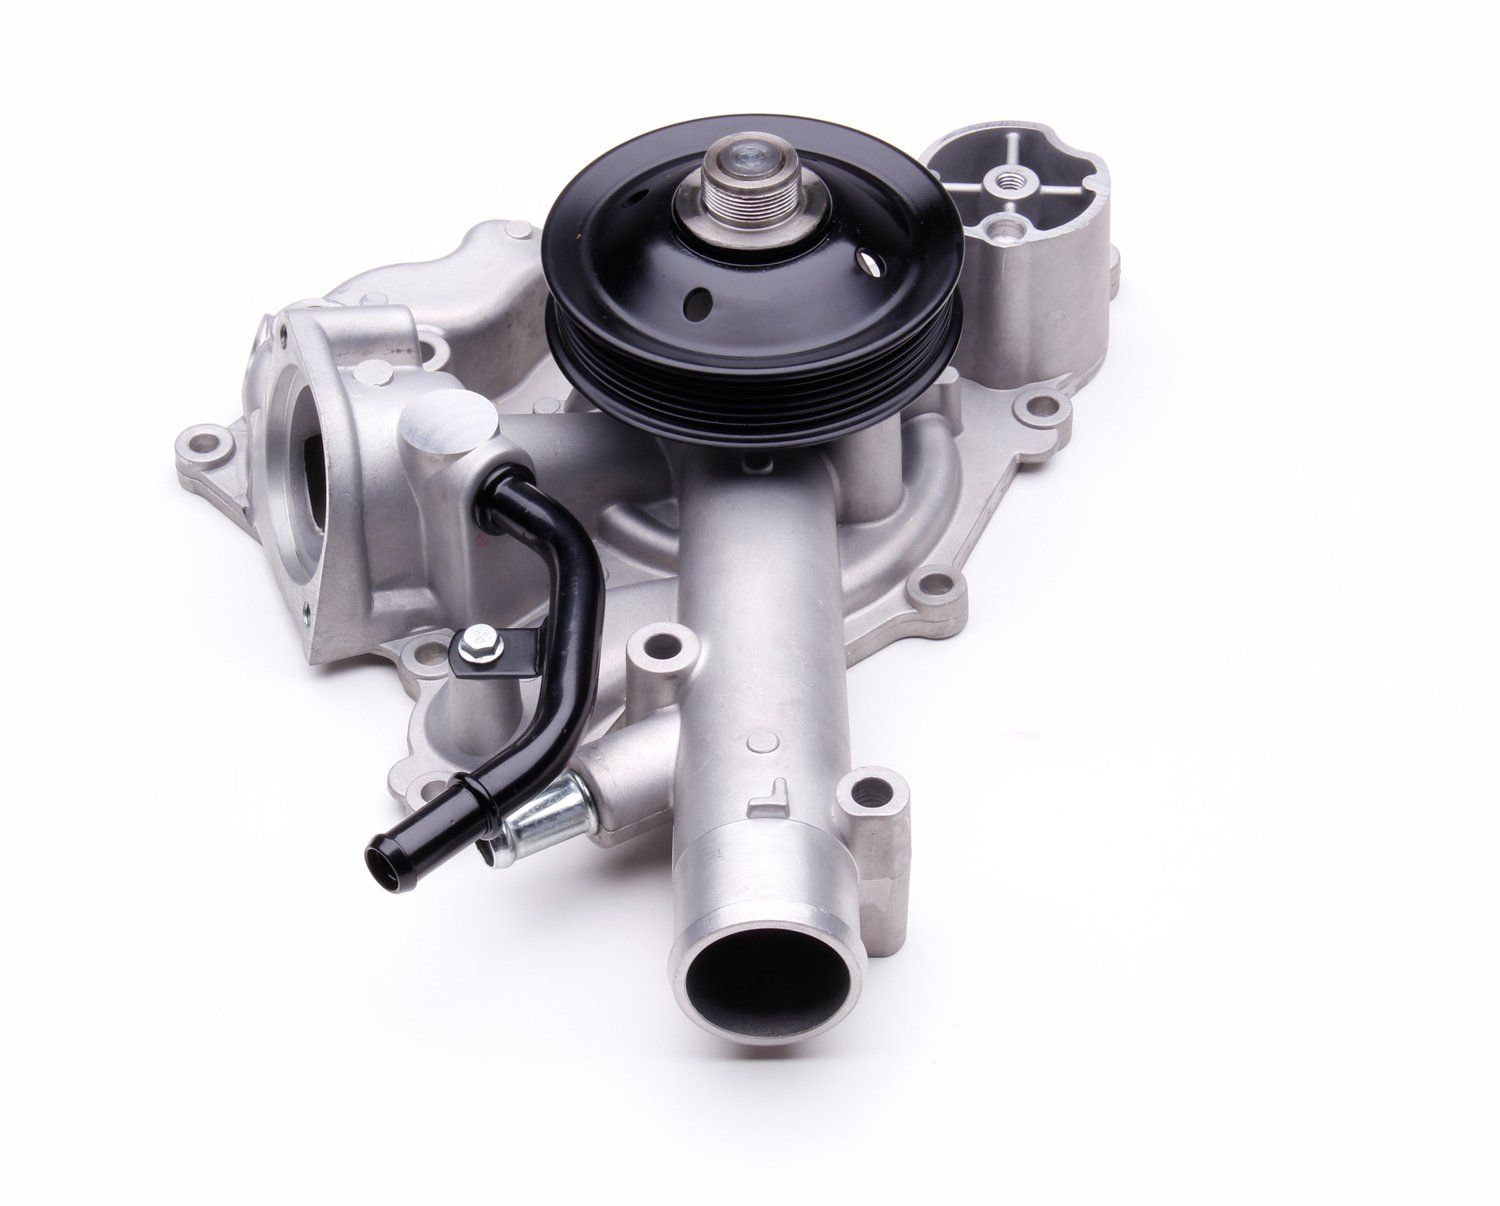 2012 Dodge Ram 1500 Engine Water Pump Replacement Airtex Cardone Gmb 2010 8 Cyl 57l Gates 43559